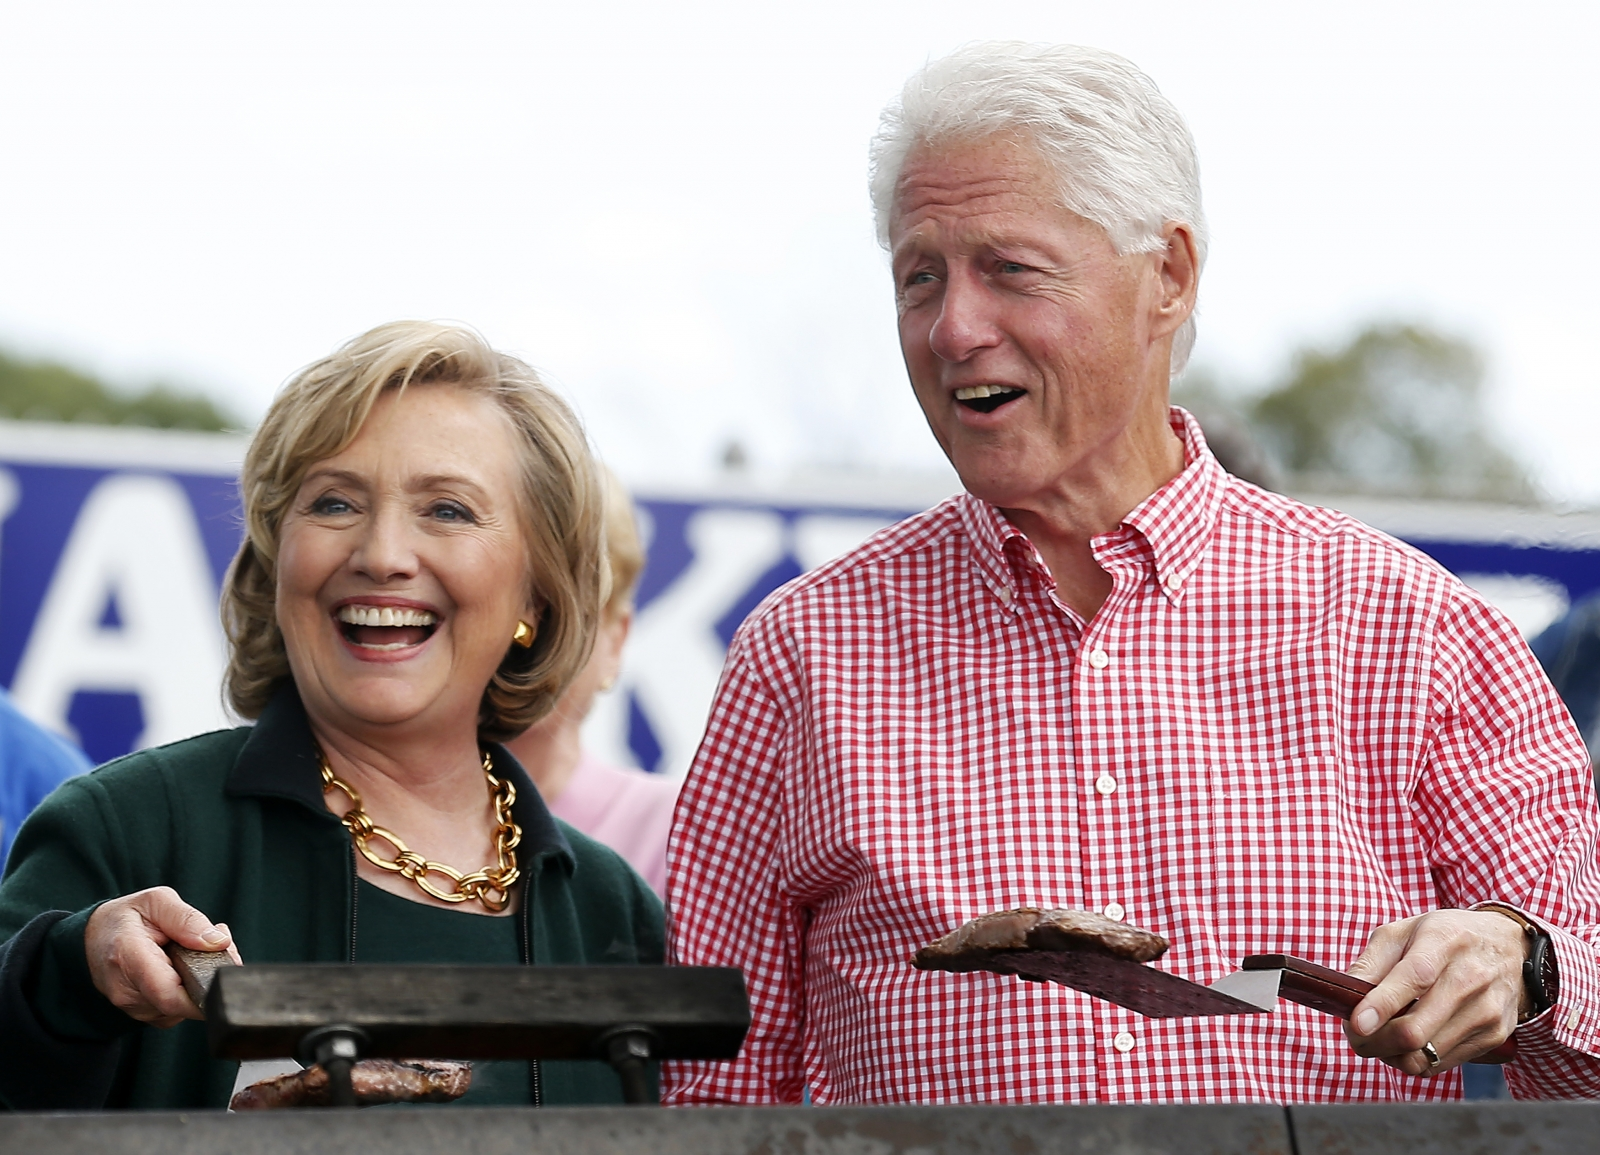 Clintons At Iowa Steak Fry